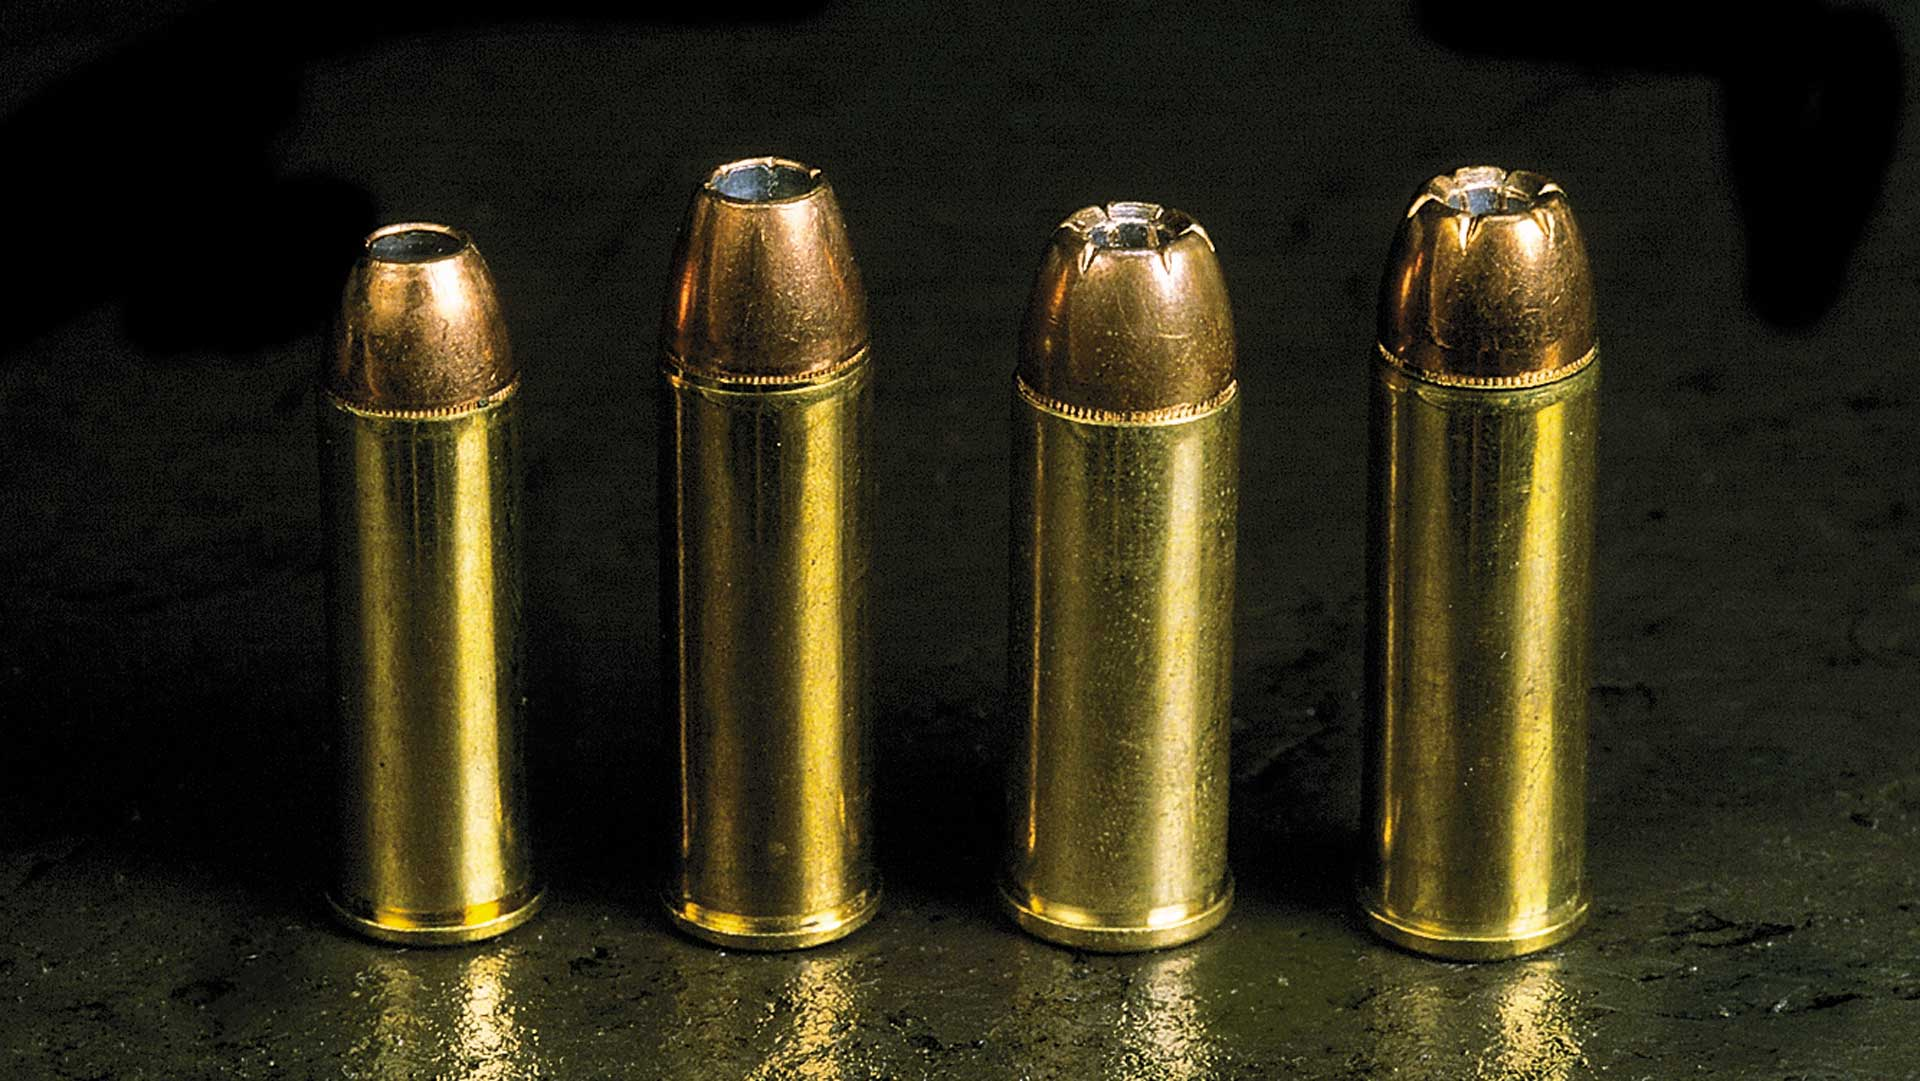 ammunition row brass yellow bullets fence picket